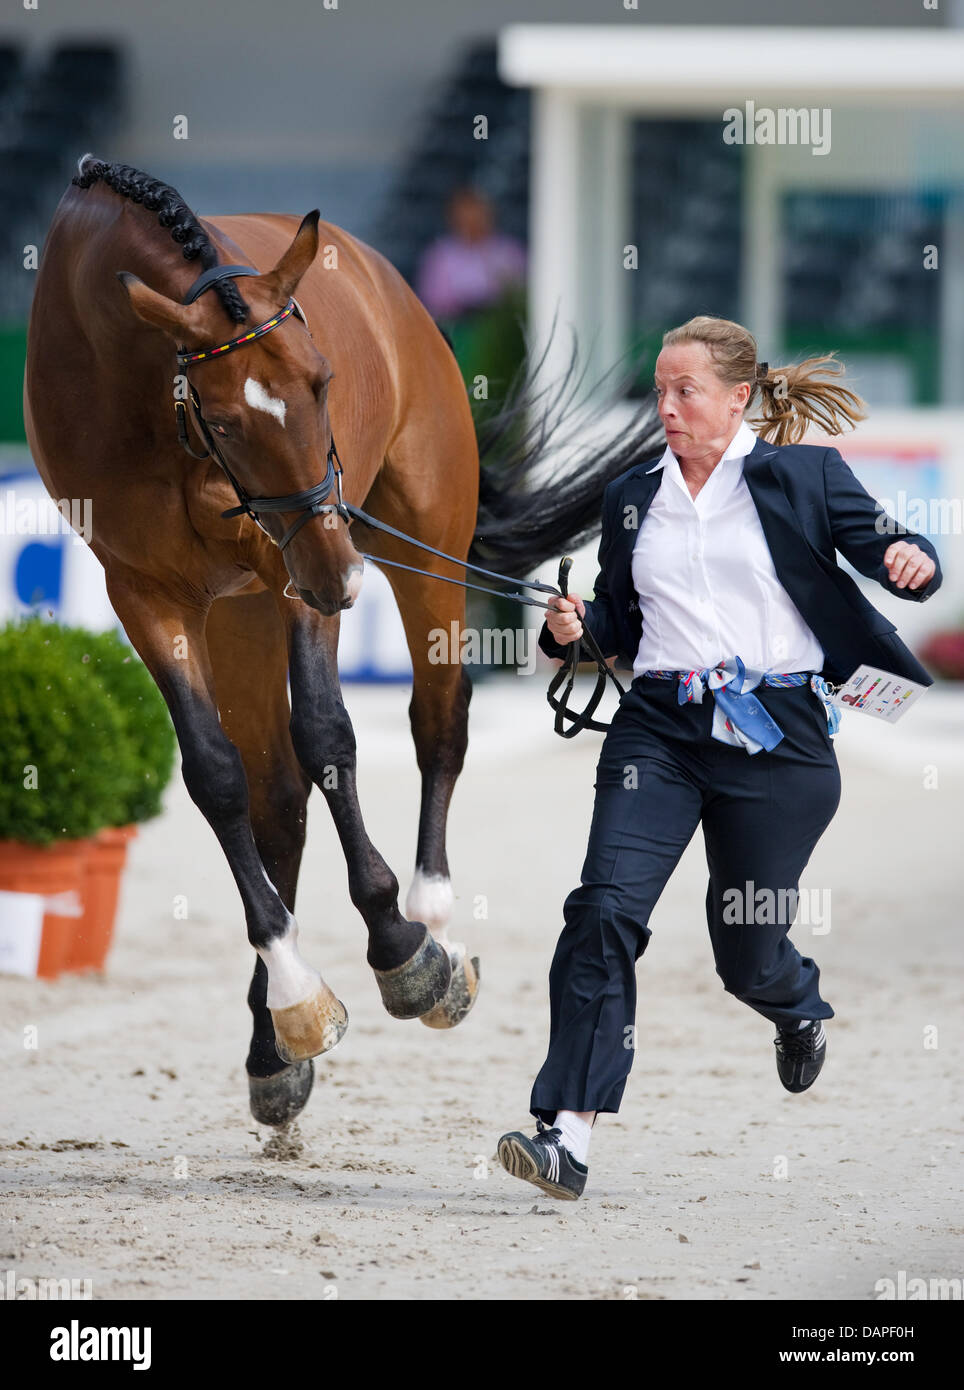 German Dressage Rider Isabell Werth And Her Horse El Santo Complete The Veterinary Examination At The European Dressage Championships In Rotterdam